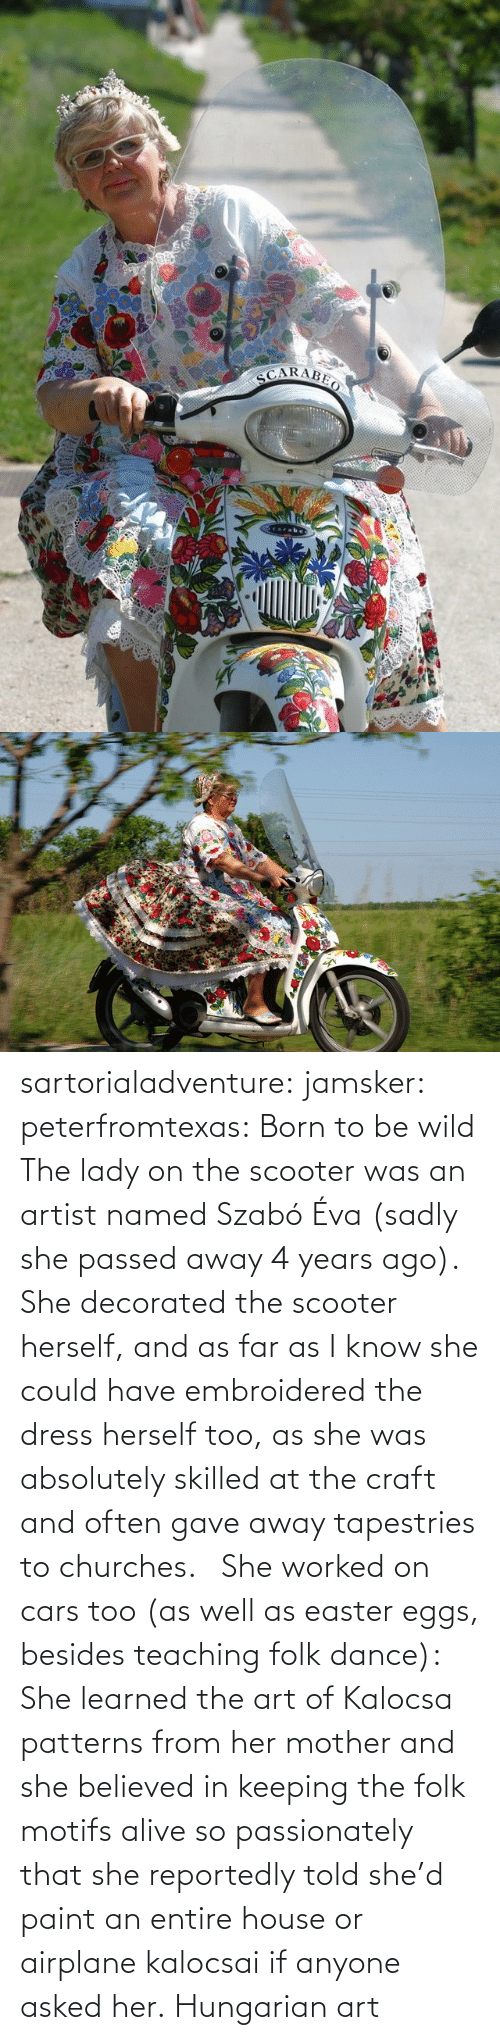 Scooter: sartorialadventure: jamsker:  peterfromtexas: Born to be wild The lady on the scooter was an artist named Szabó Éva (sadly she passed away 4 years ago). She decorated the scooter herself, and as far as I know she could have embroidered the dress herself too, as she was absolutely skilled at the craft and often gave away tapestries to churches.   She worked on cars too (as well as easter eggs, besides teaching folk dance): She learned the art of Kalocsa patterns from her mother and she believed in keeping the folk motifs alive so passionately that she reportedly told she'd paint an entire house or airplane kalocsai if anyone asked her.  Hungarian art